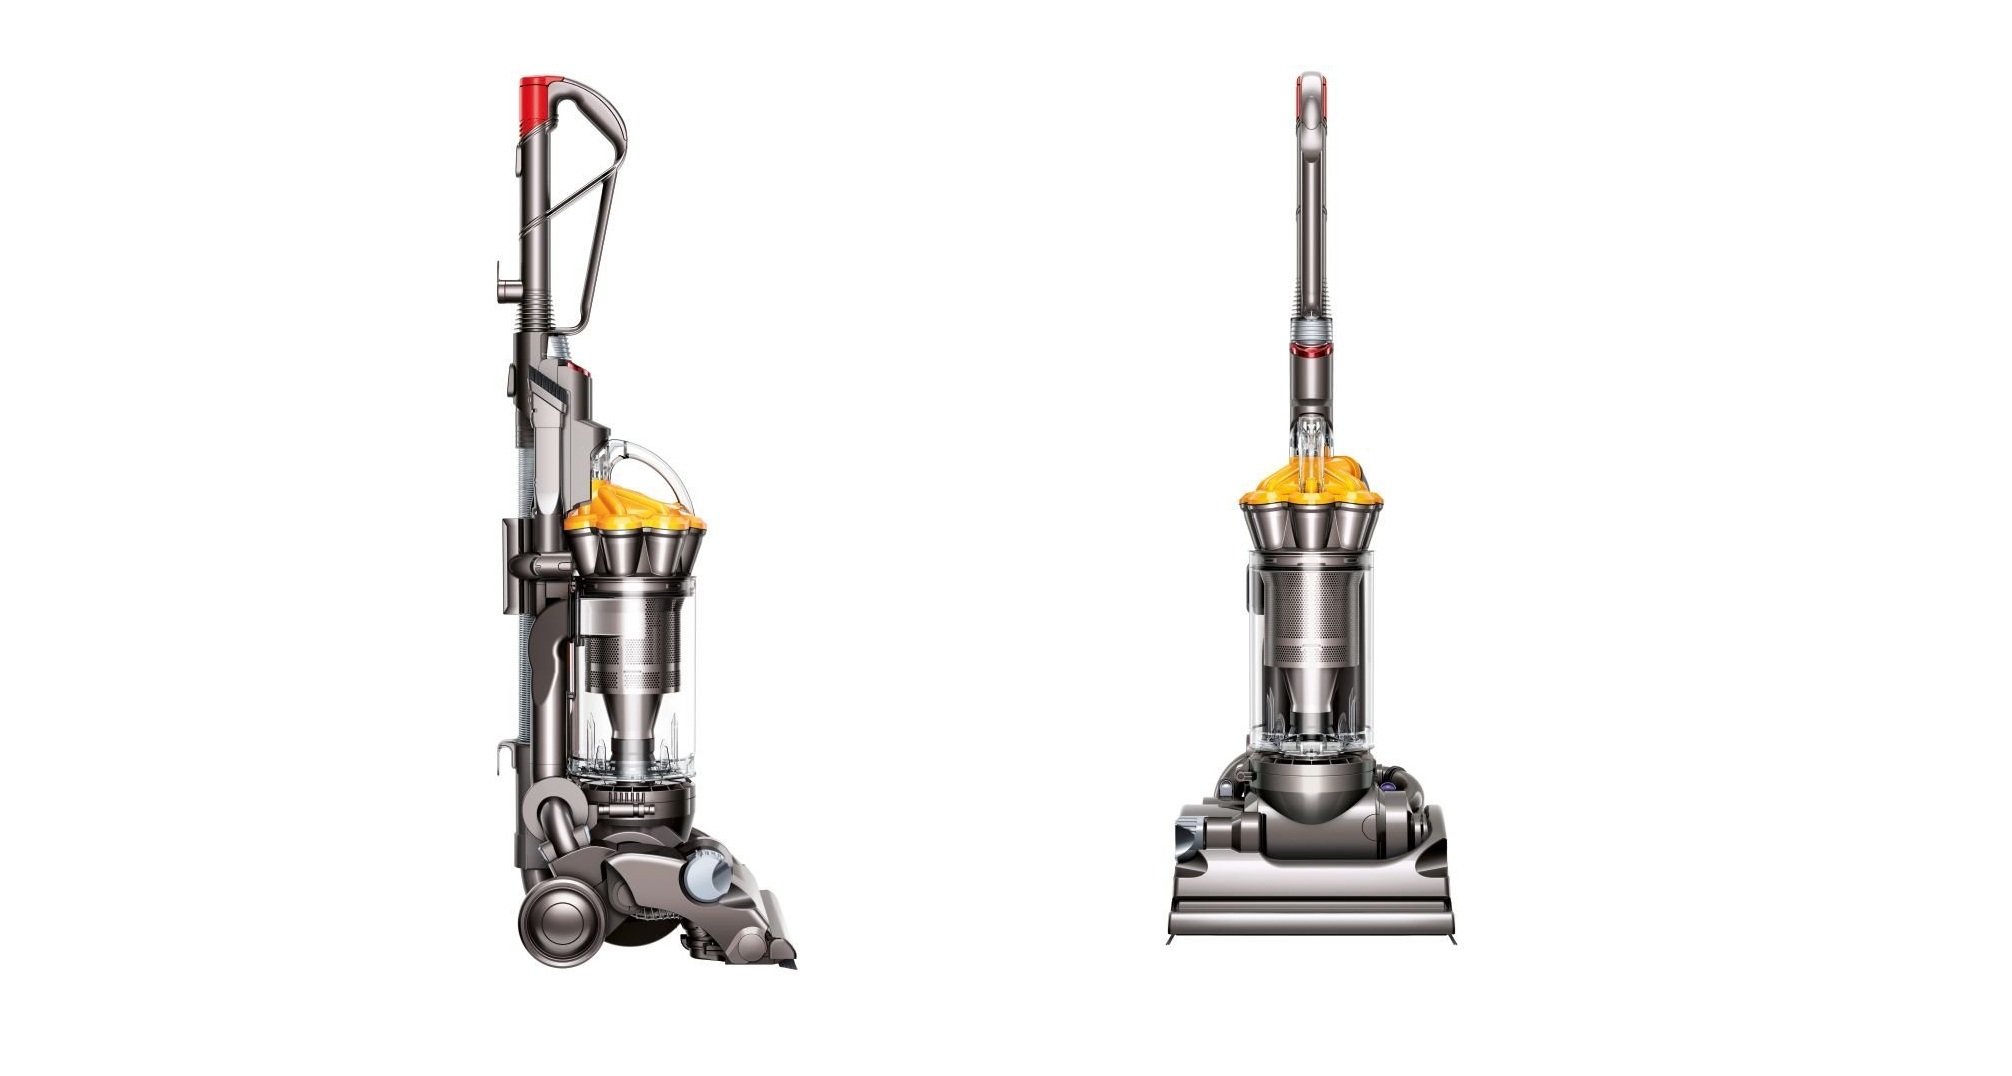 dyson multi floor dyson ball dc multi floor vacuum review. Black Bedroom Furniture Sets. Home Design Ideas